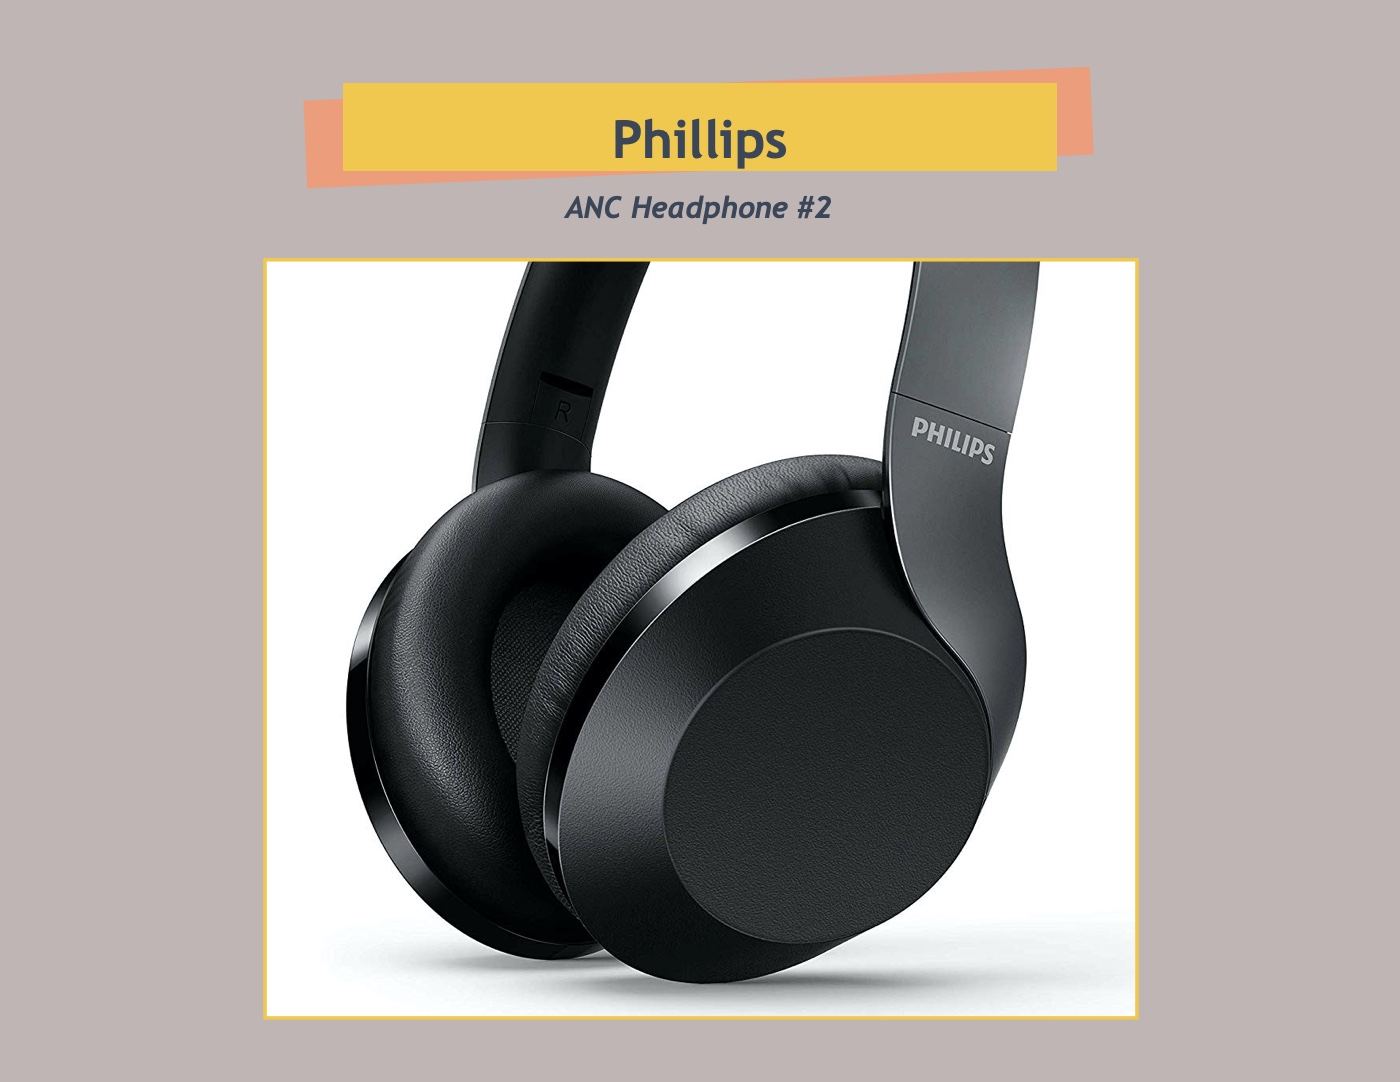 ANC Headphones Phillips